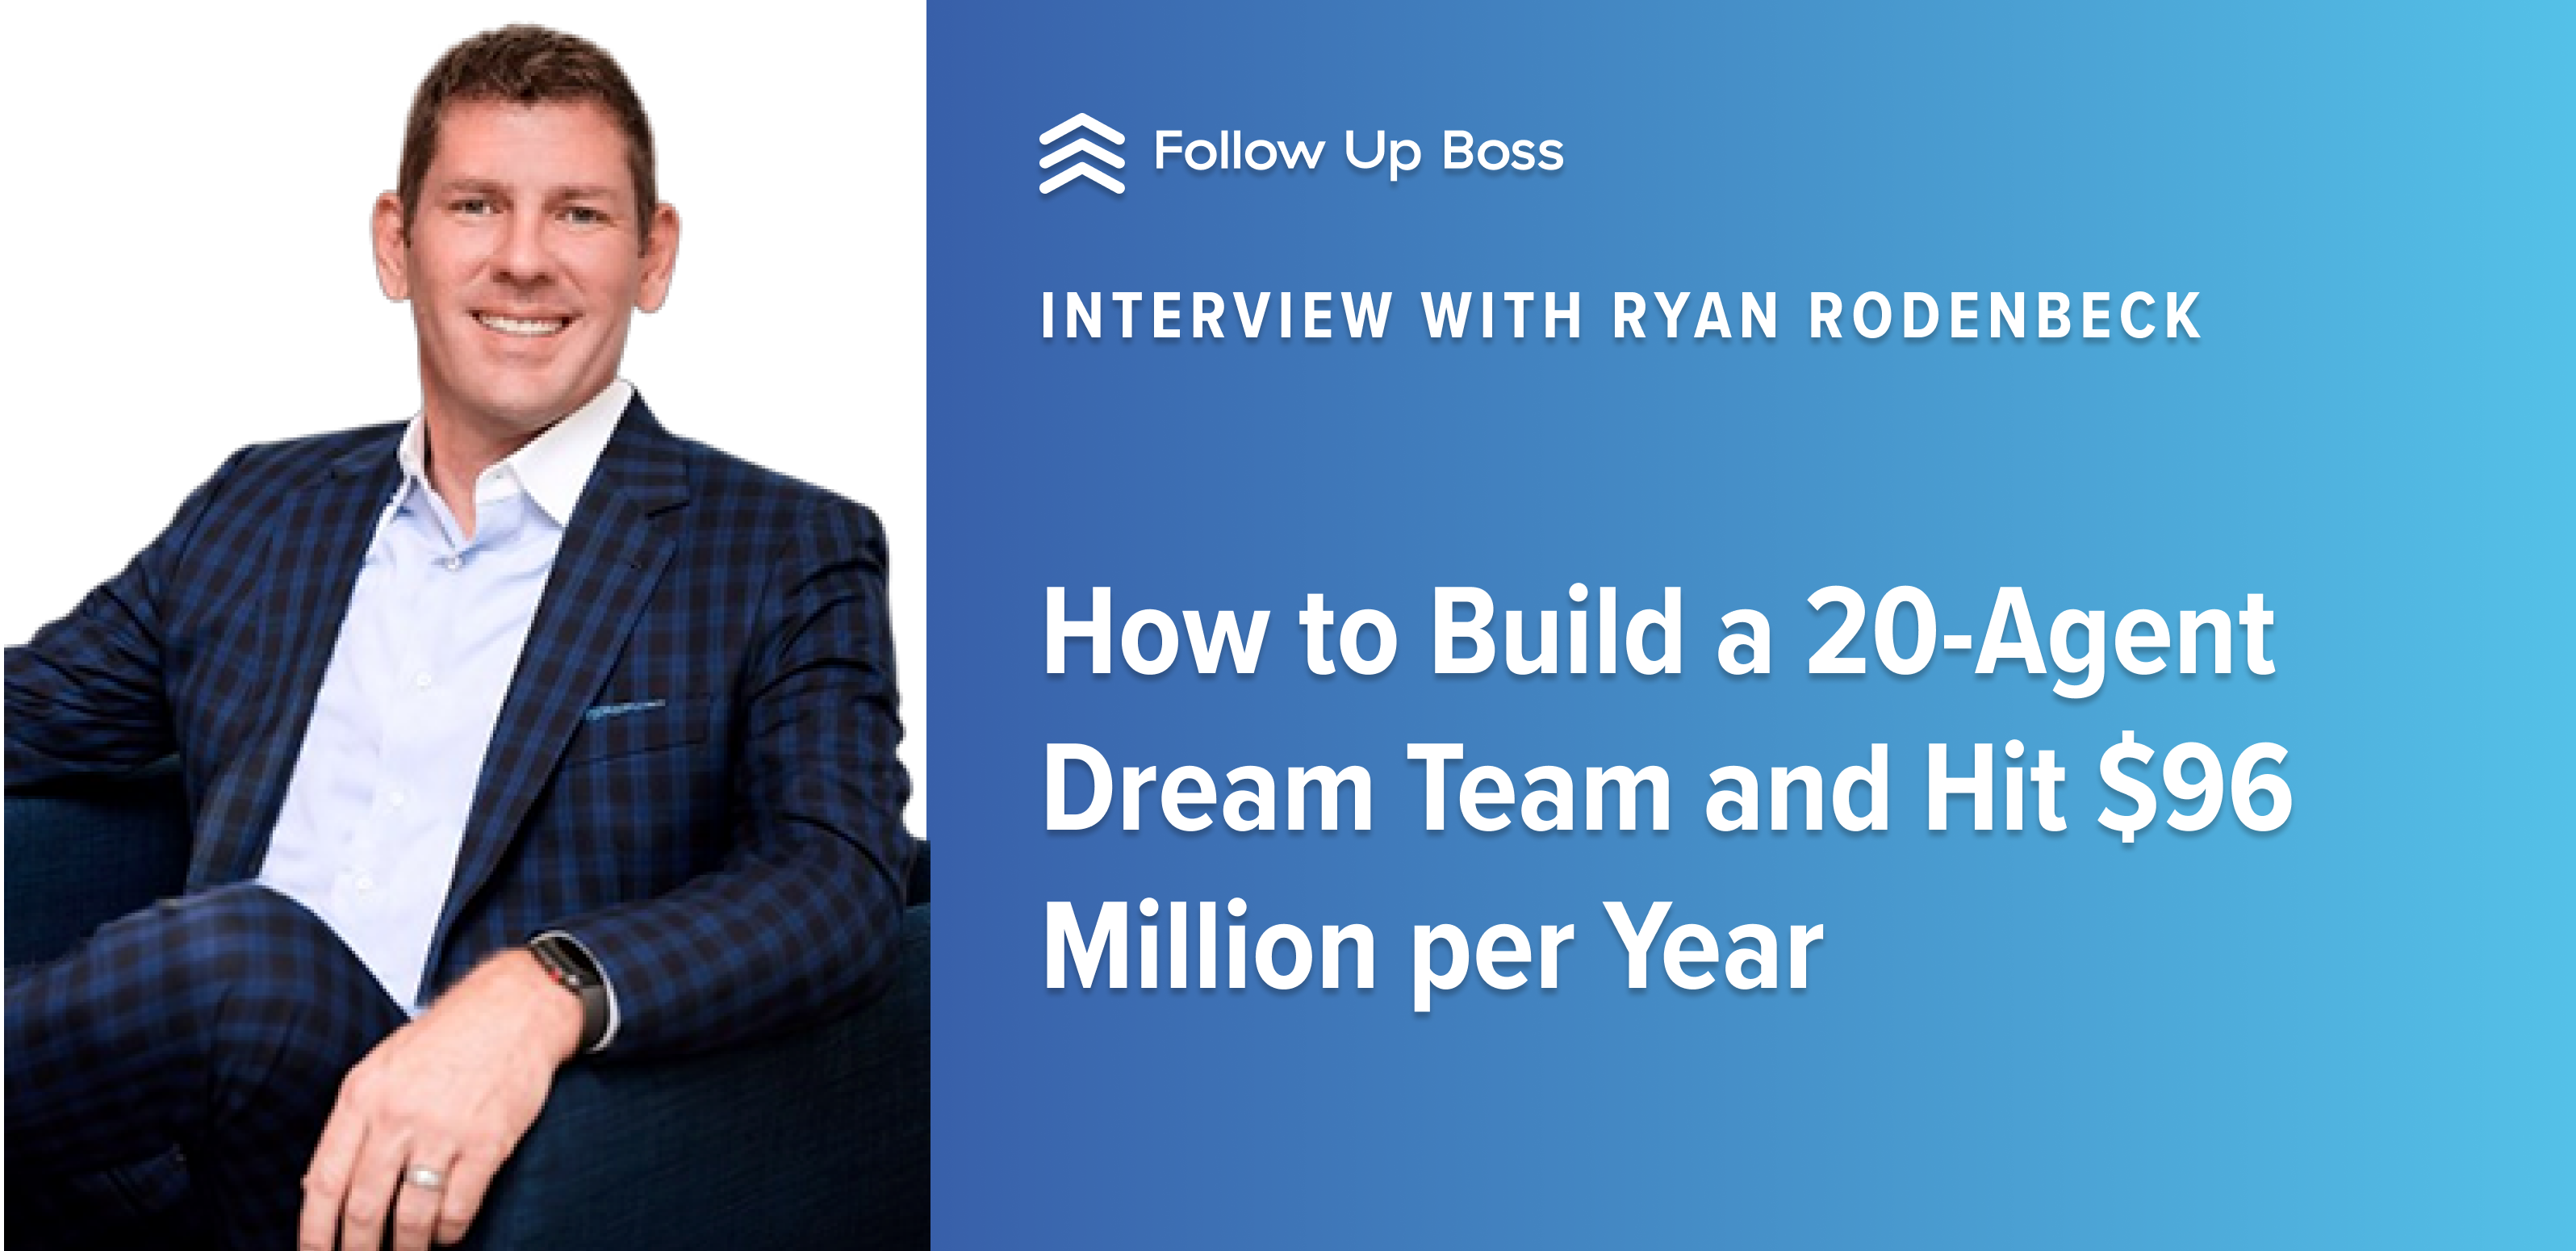 How to Build a 20-Agent Dream Team and Hit $96 Million per Year — Interview with Ryan Rodenbeck